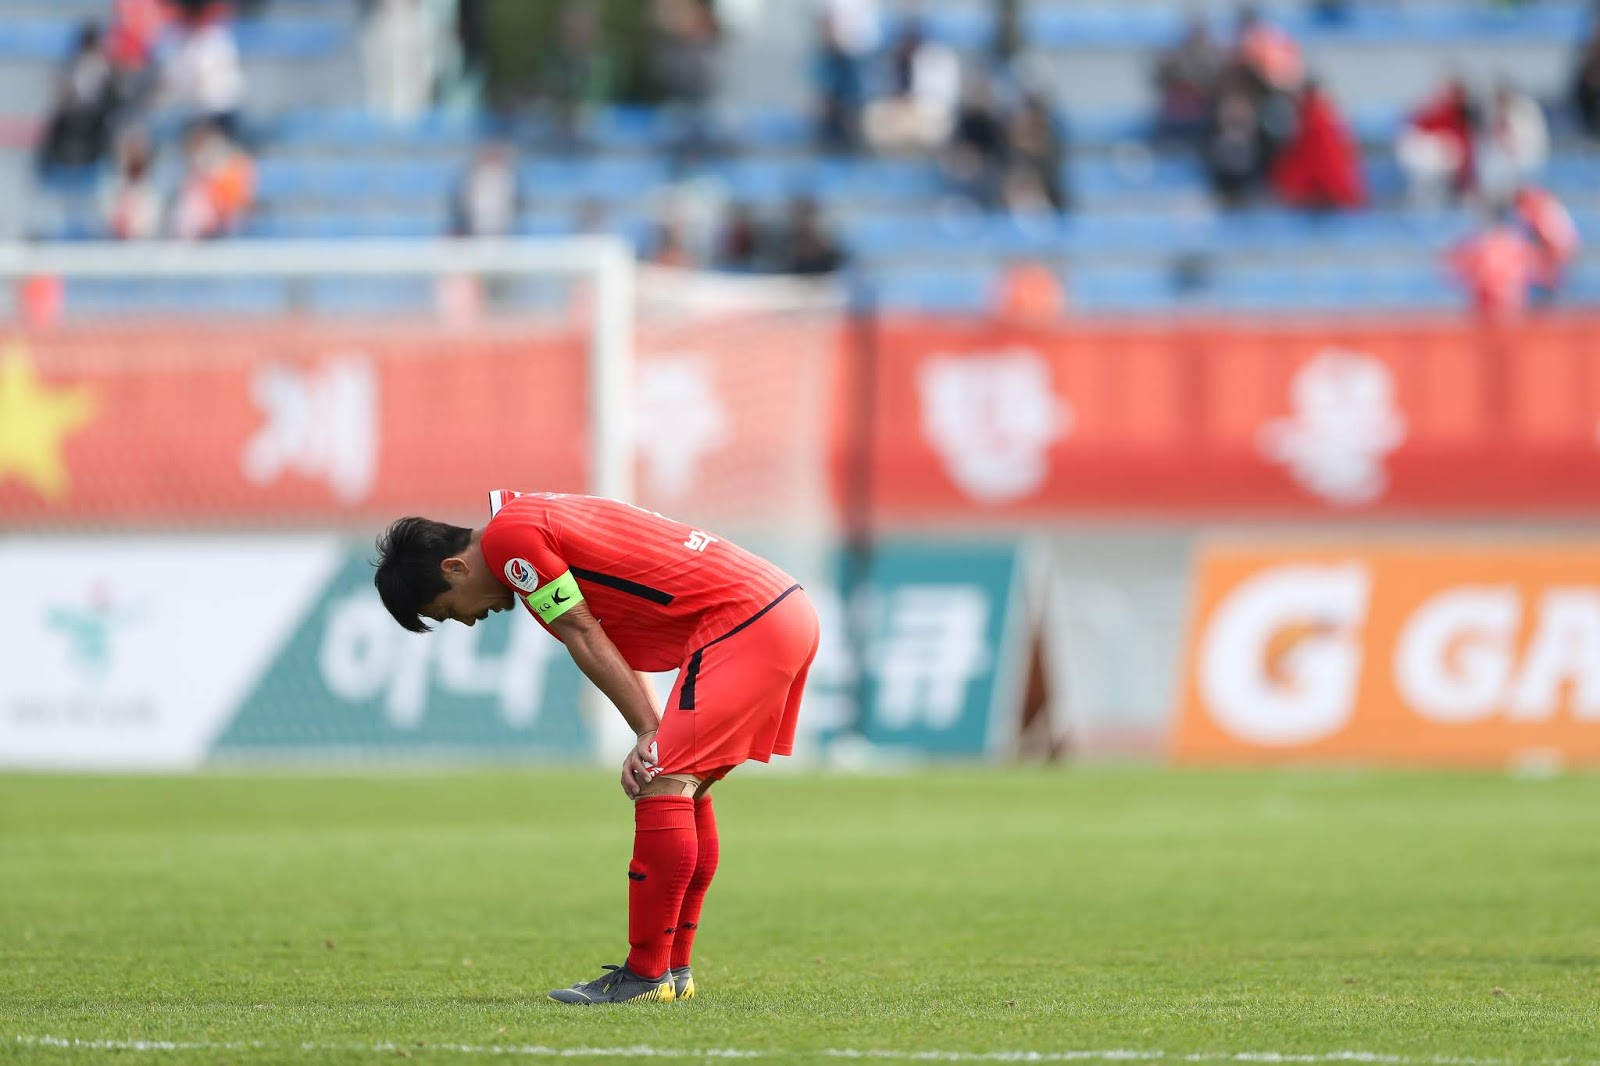 K League 1 Preview: Jeju United vs Gyeongnam FC